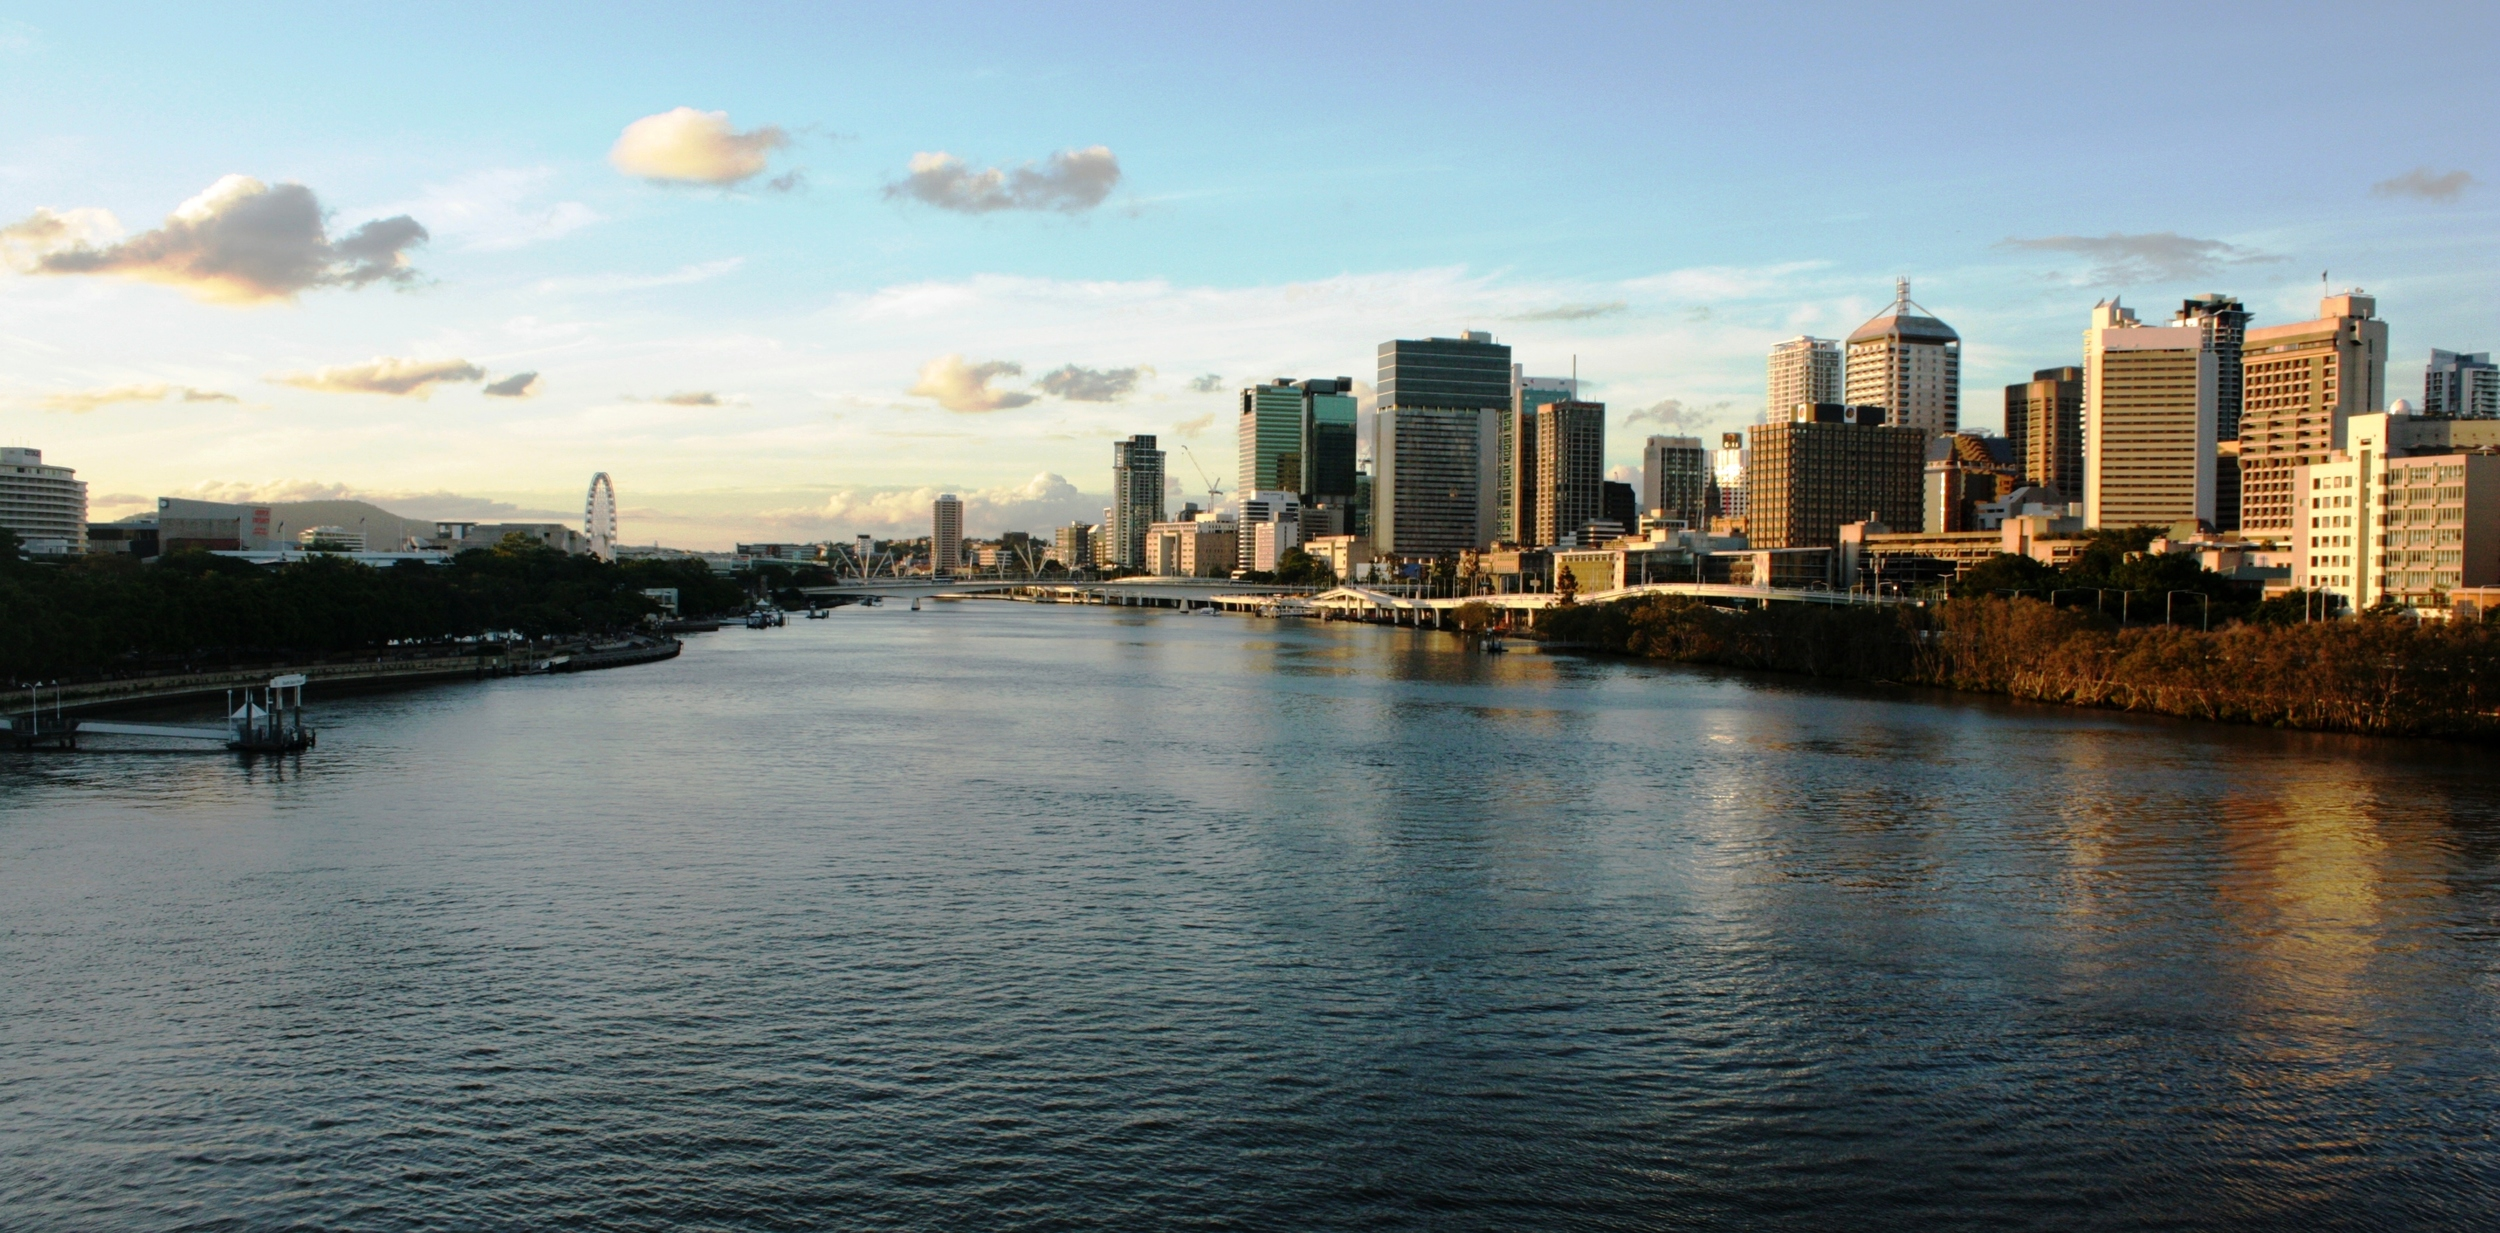 Brisbane river and center